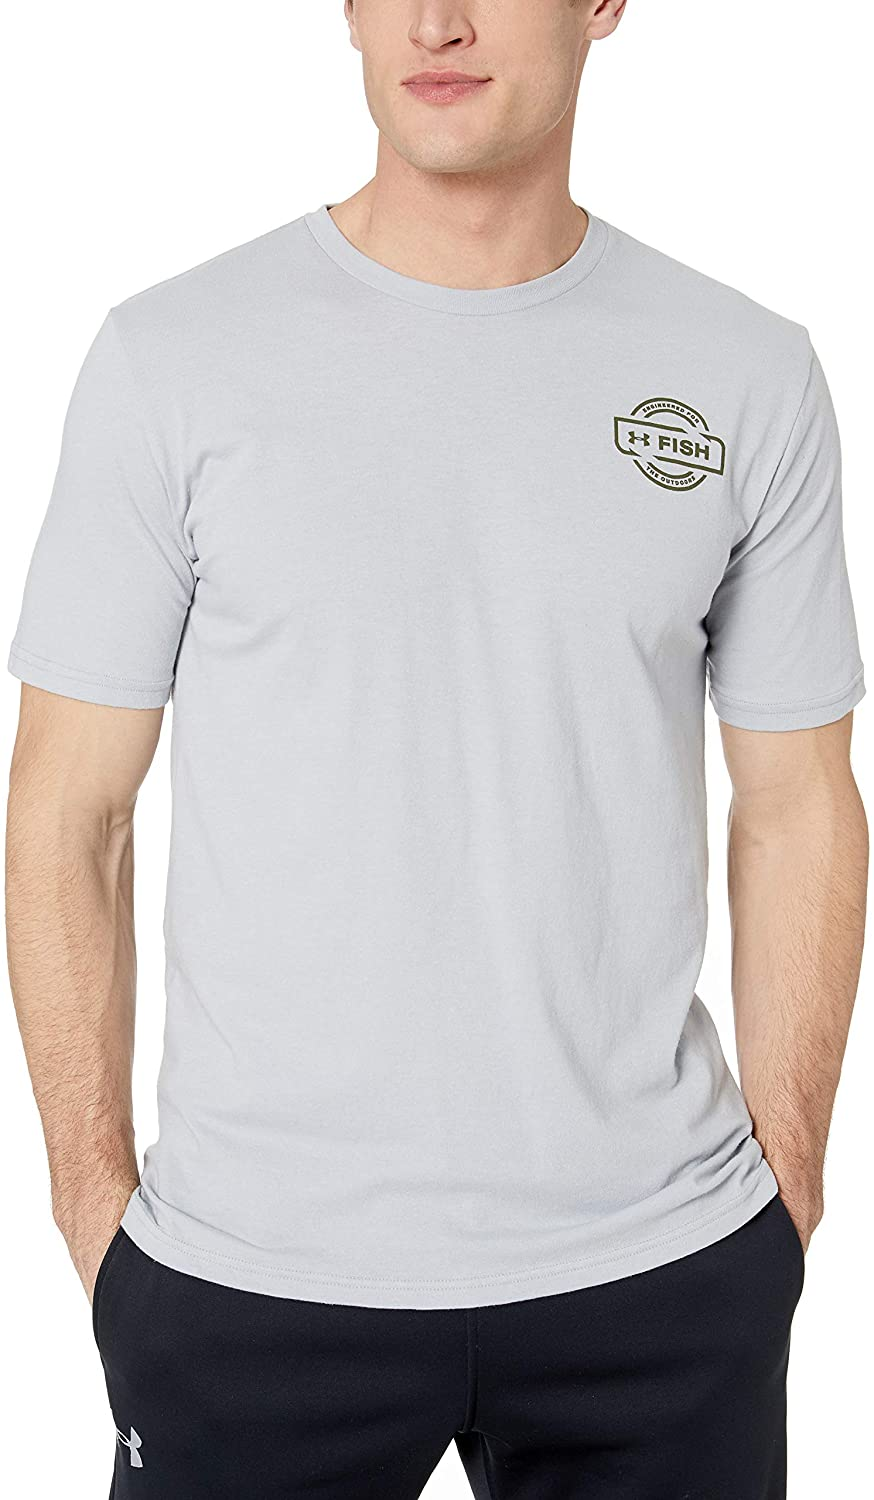 Men's Under Armour Light Grey Vintage Walleye T-Shirt, 1328148 011